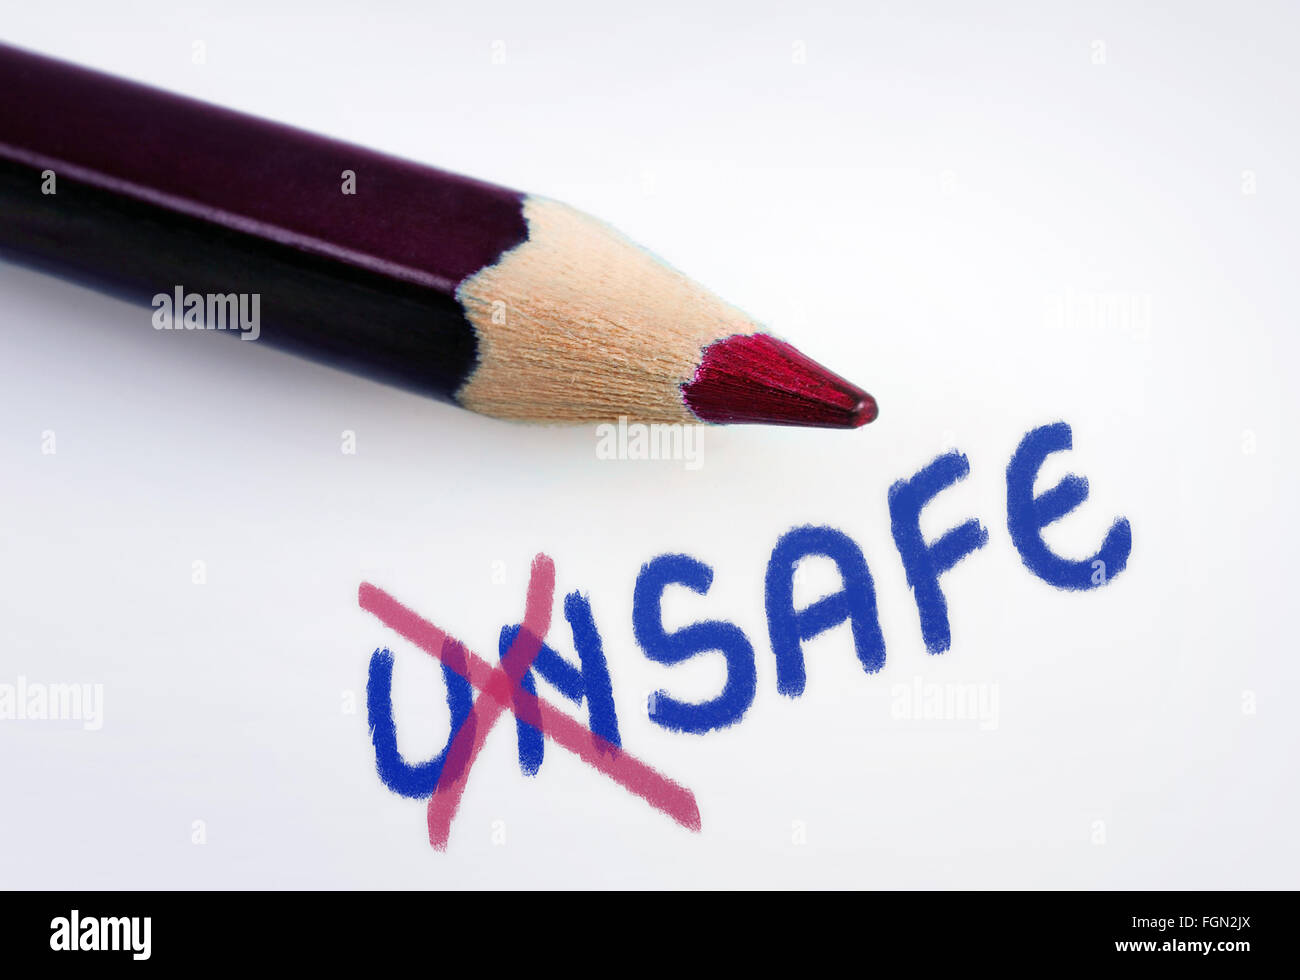 Unsafe word on grey background - Stock Image